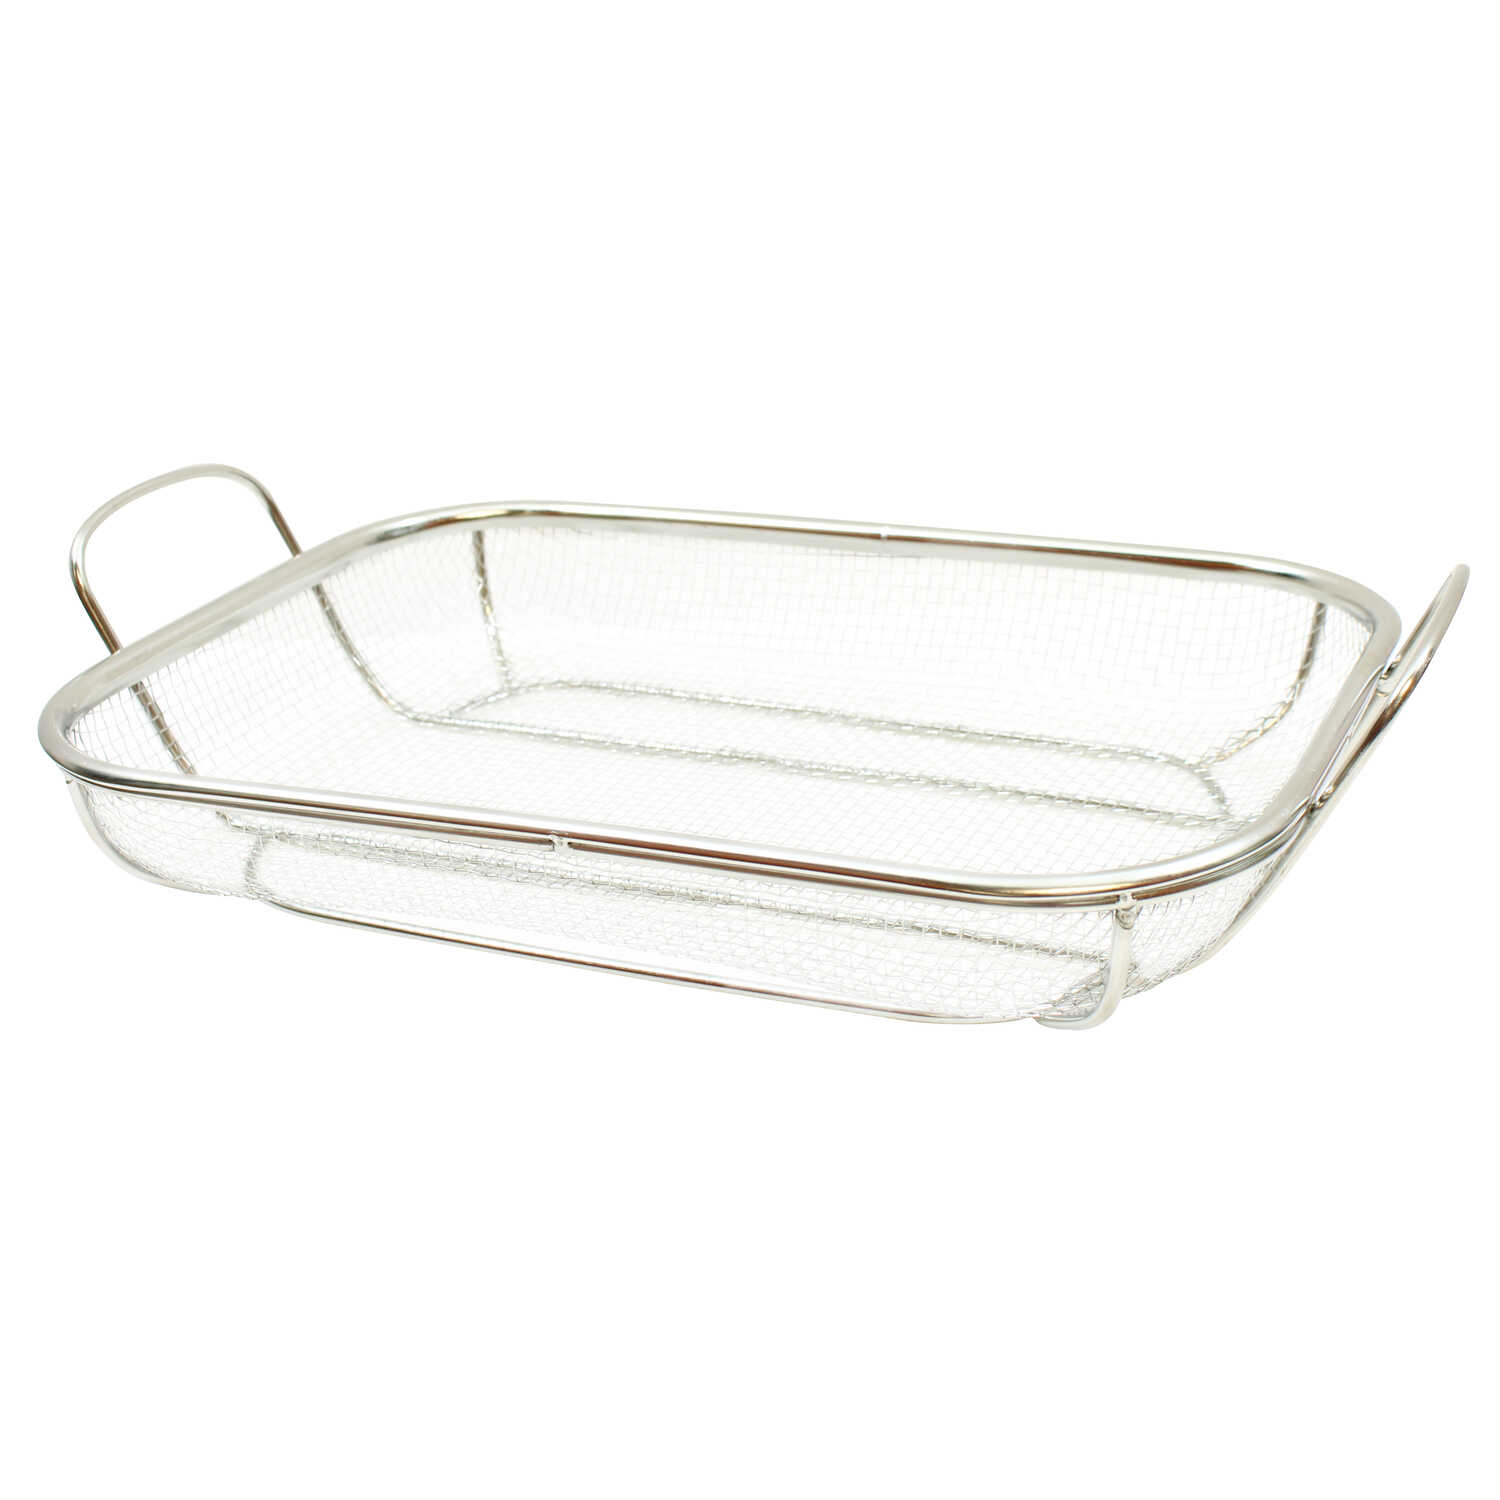 Tablecraft  BBQ  11 in. W x 18 in. L Silver  Stainless Steel  Rectangular Grilling Basket